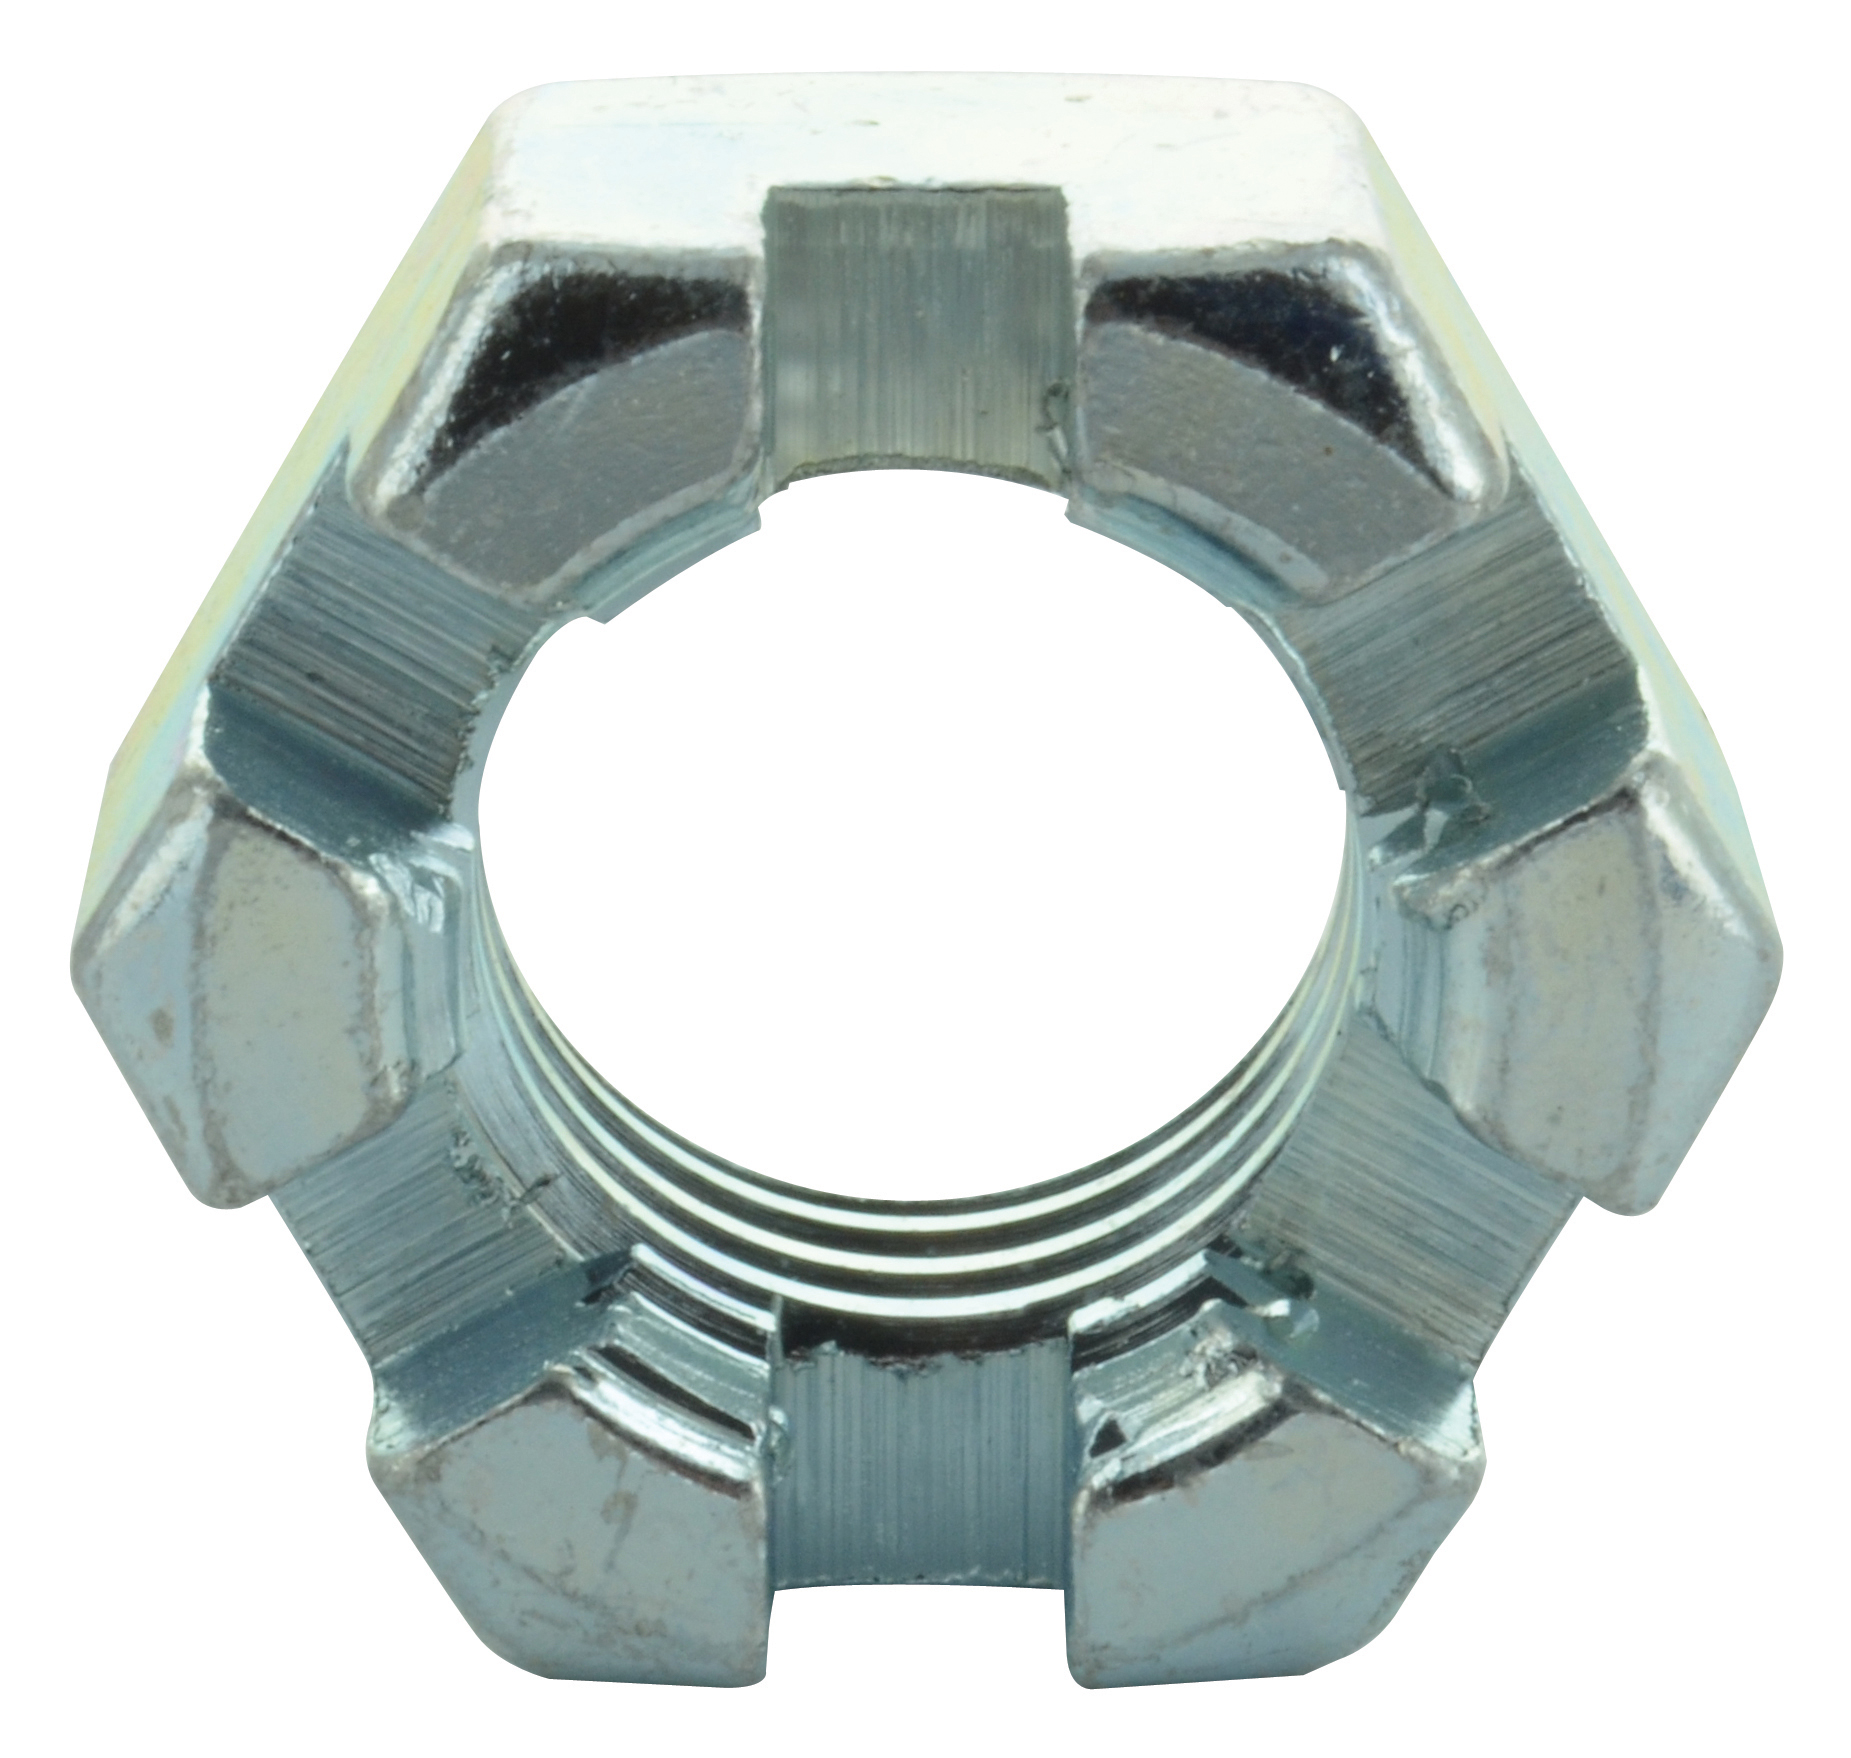 1-1/2-12 Fine Zinc Plated Grade 2 Slotted Finished Hex Nut